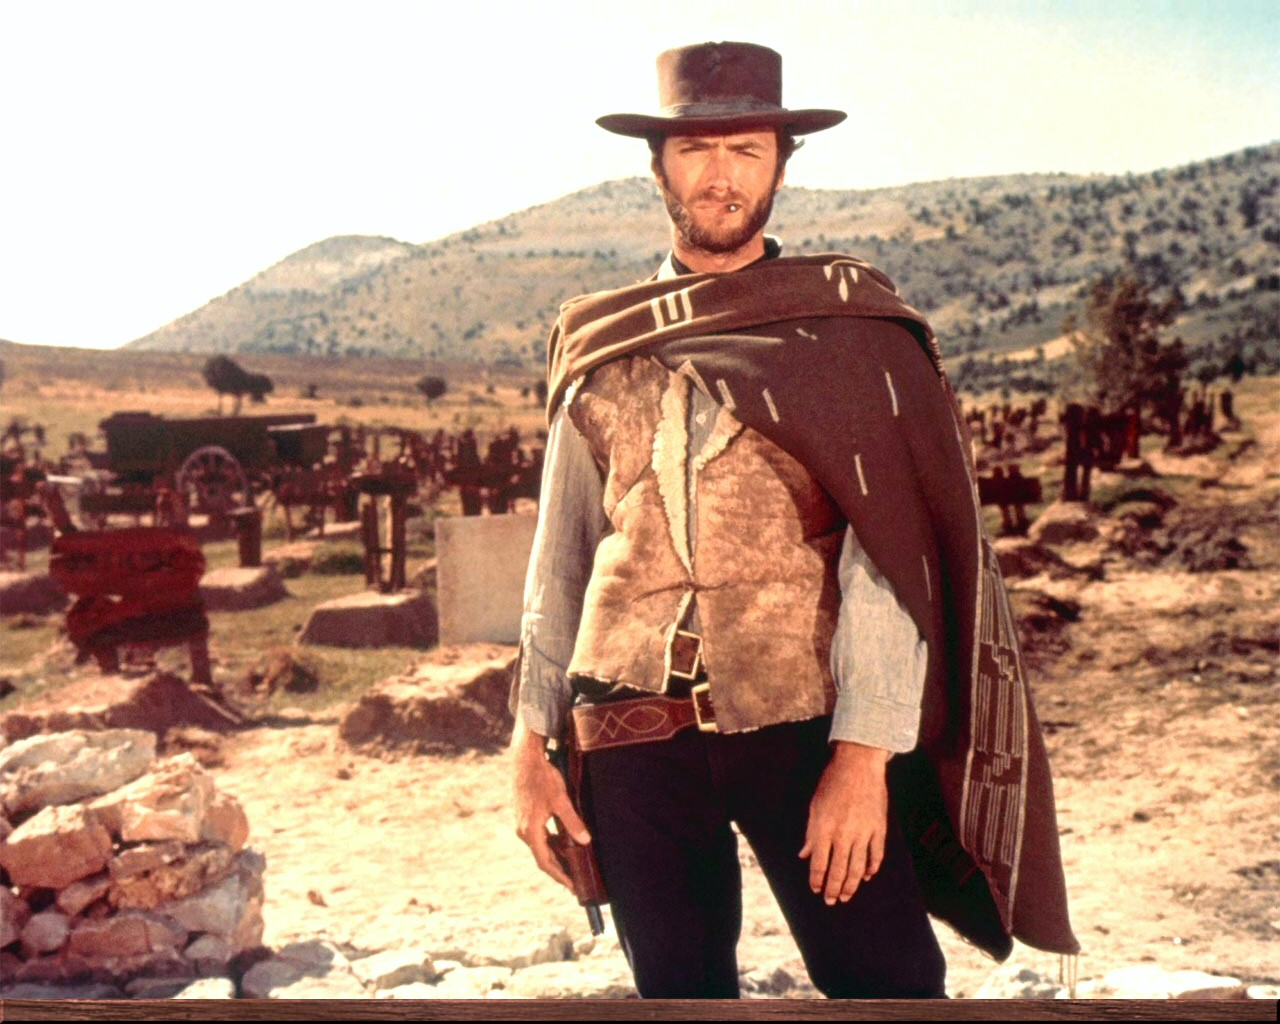 [Image: Annex%20-%20Eastwood,%20Clint%20(Good,%2...he)_02.jpg]